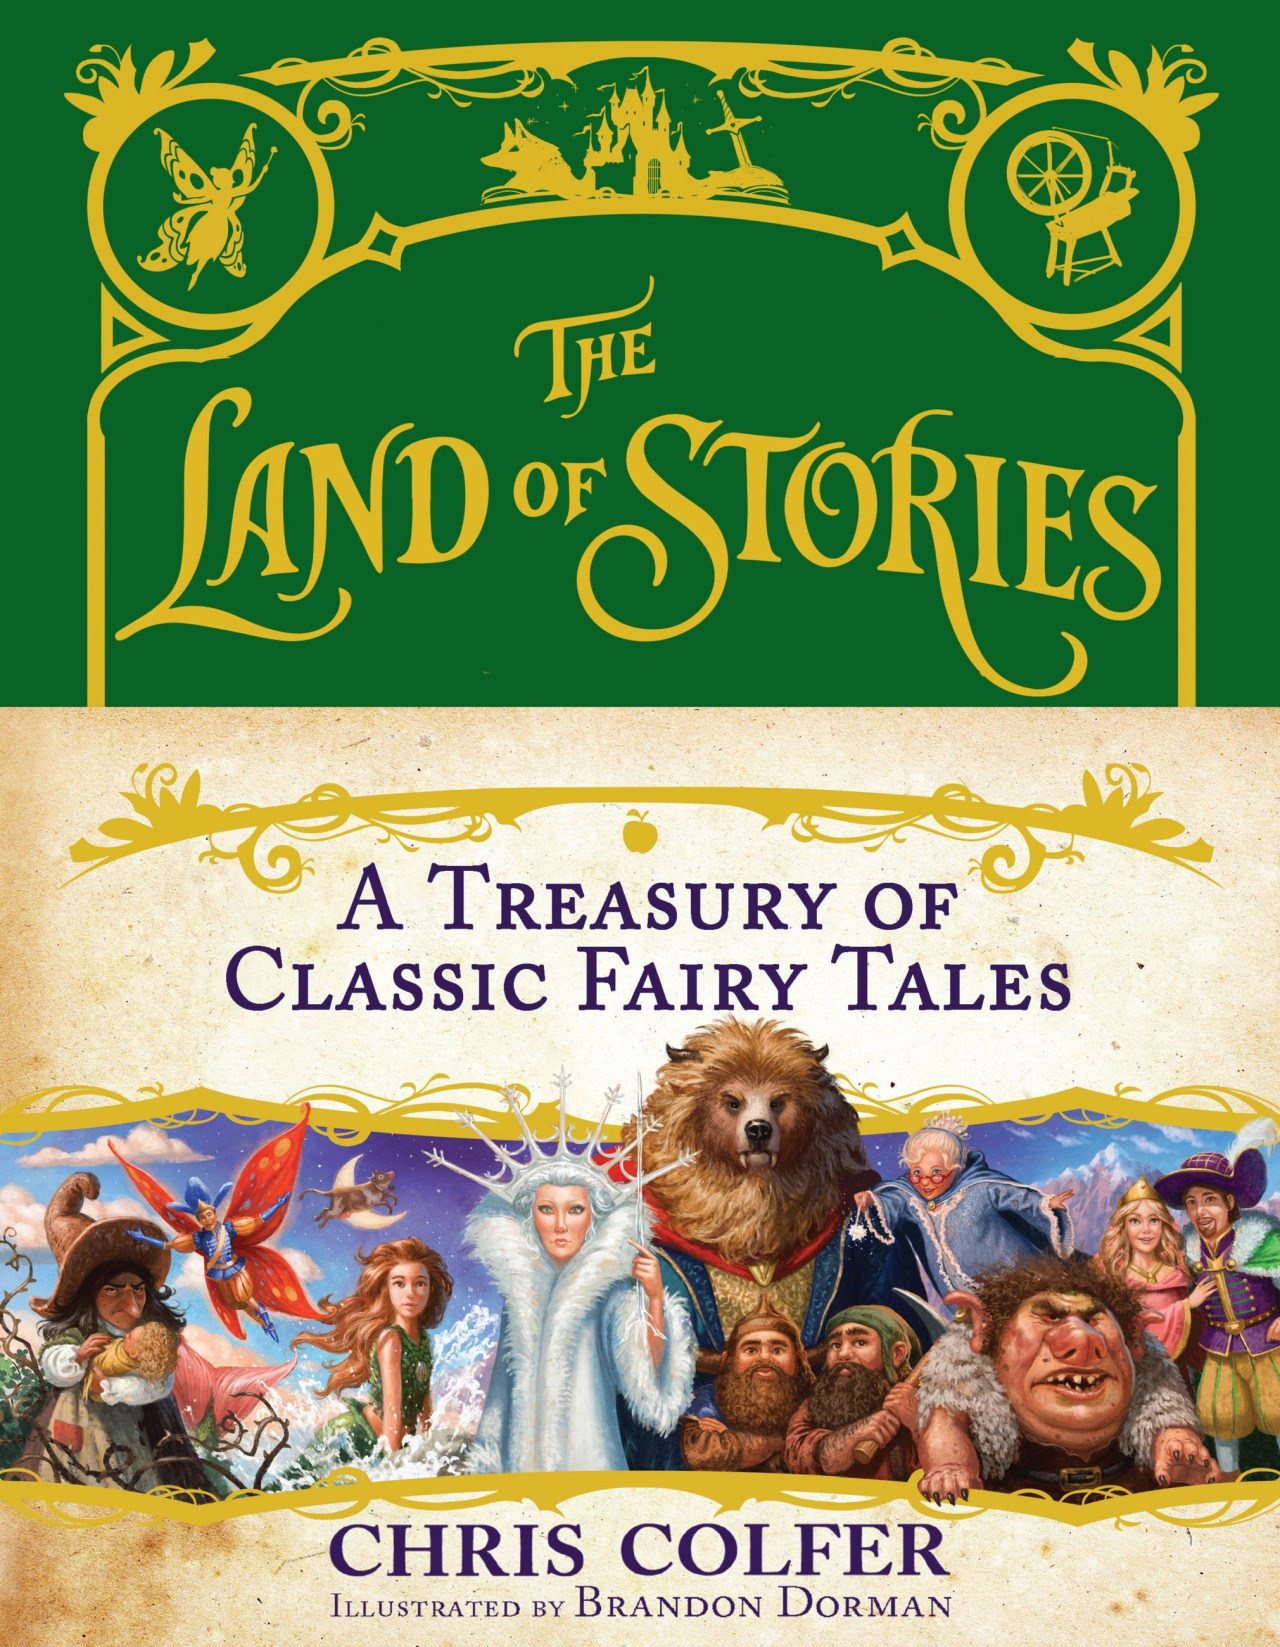 A Treasury of Classic Fairy Tales | The Land Of Stories Wiki